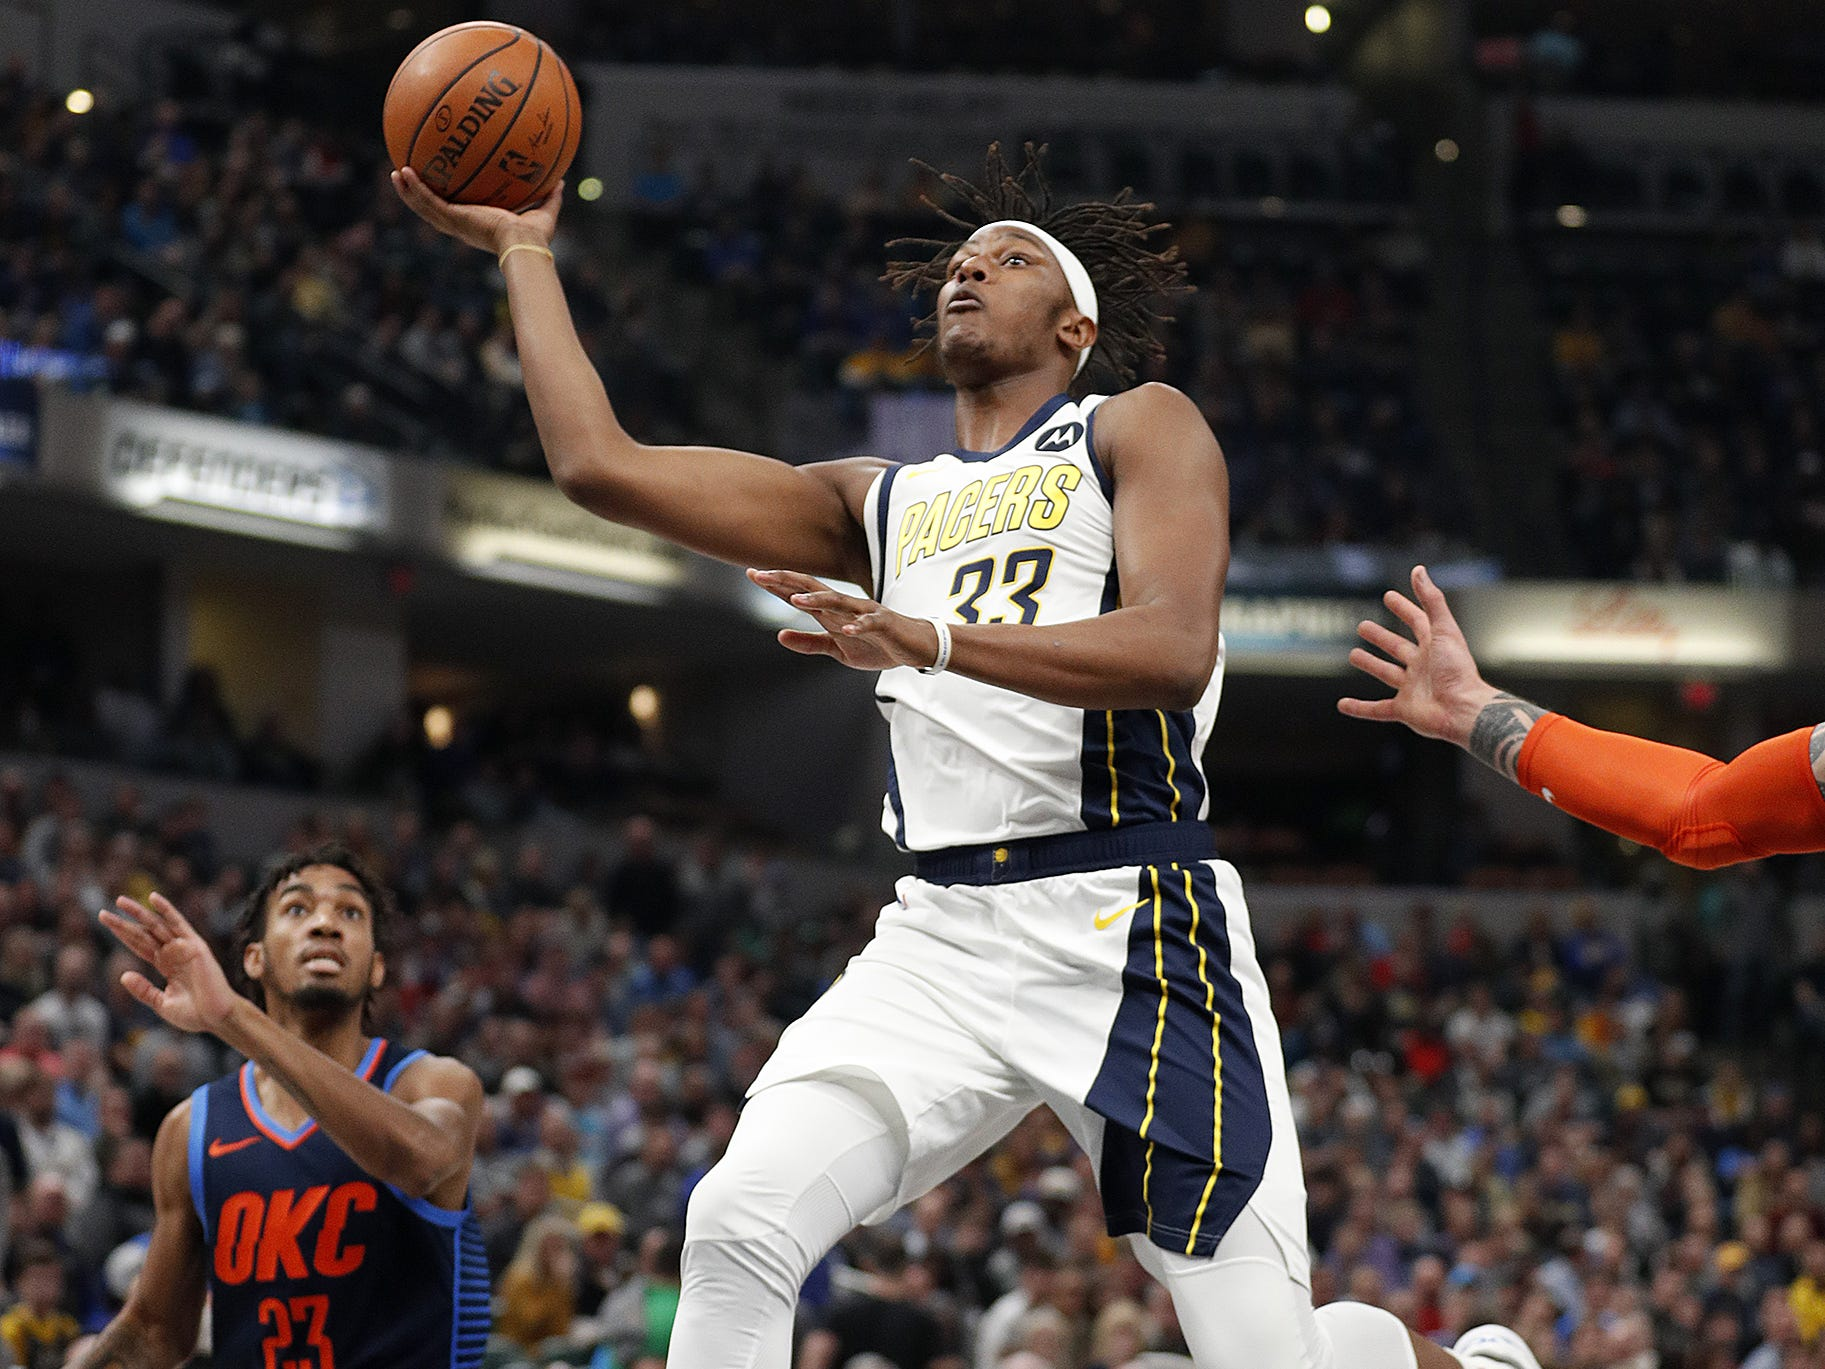 Indiana Pacers center Myles Turner (33) drives to the basket in the first half of their game at Bankers Life Fieldhouse on Thursday, Mar. 14, 2019.